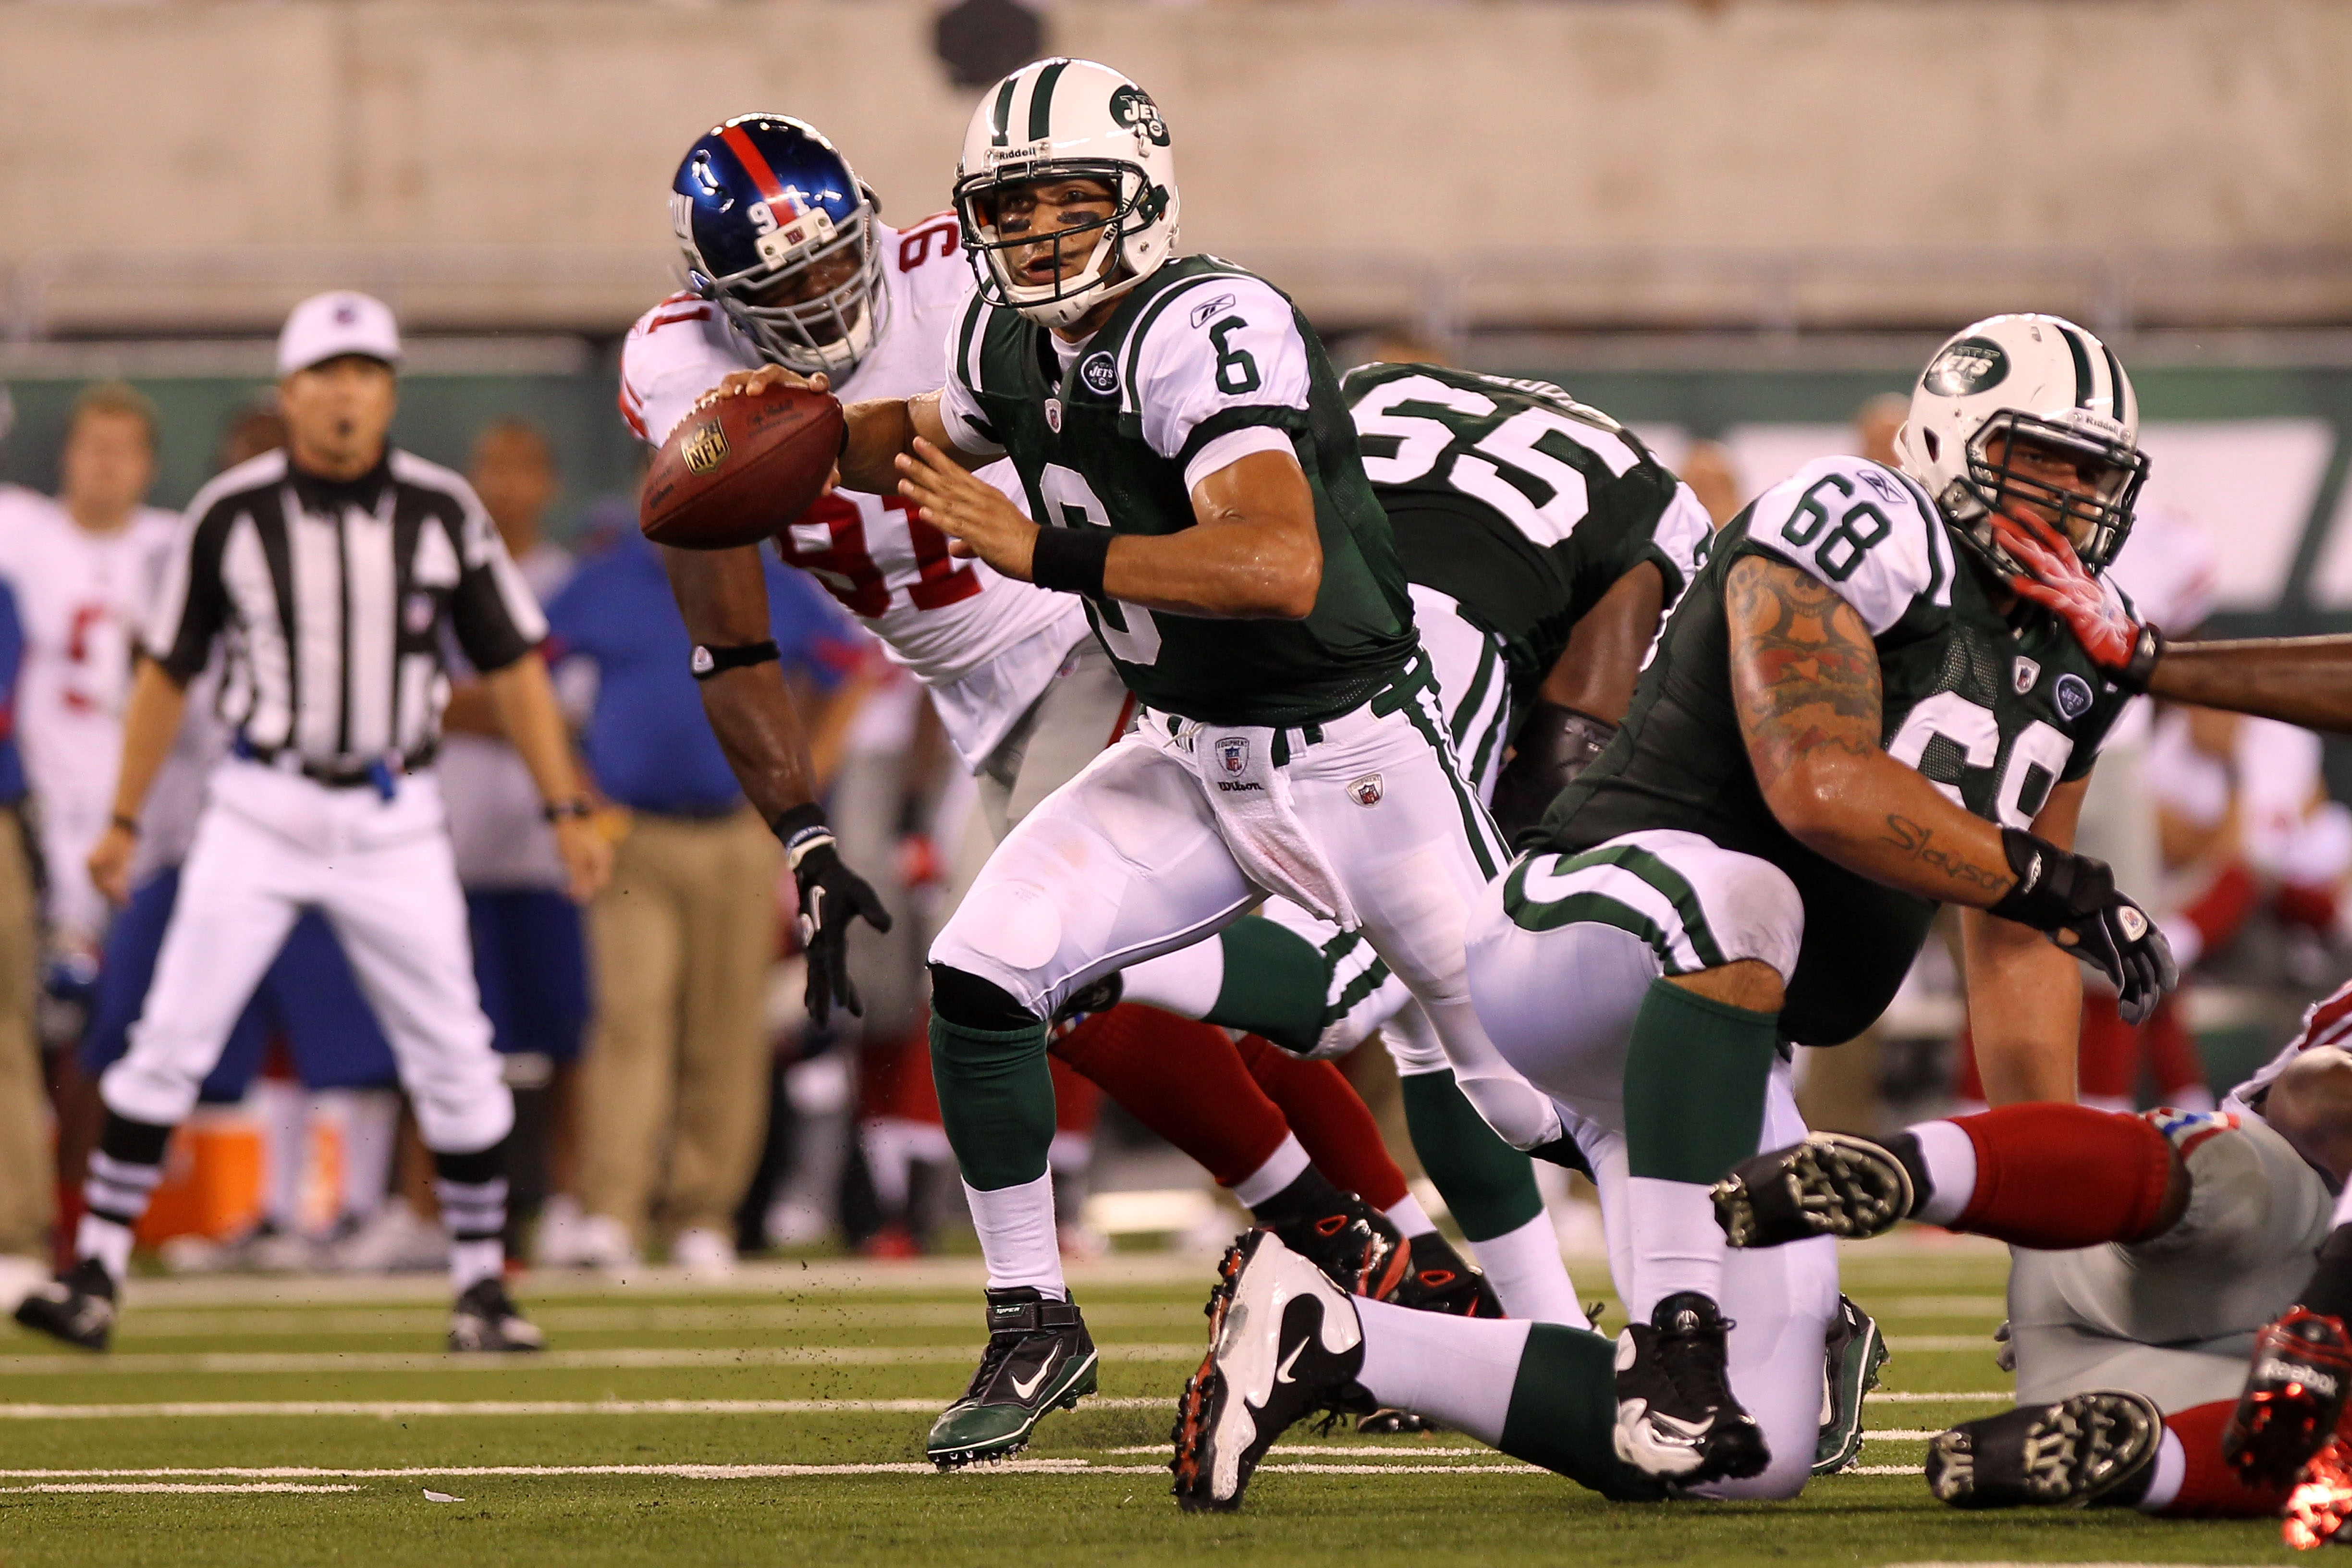 EAST RUTHERFORD, NJ - AUGUST 16:  Quarterback Mark Sanchez #6 of the New York Jets scrambles against the New York Giants during their game at New Meadowlands Stadium on August 16, 2010 in East Rutherford, New Jersey.  (Photo by Nick Laham/Getty Images)